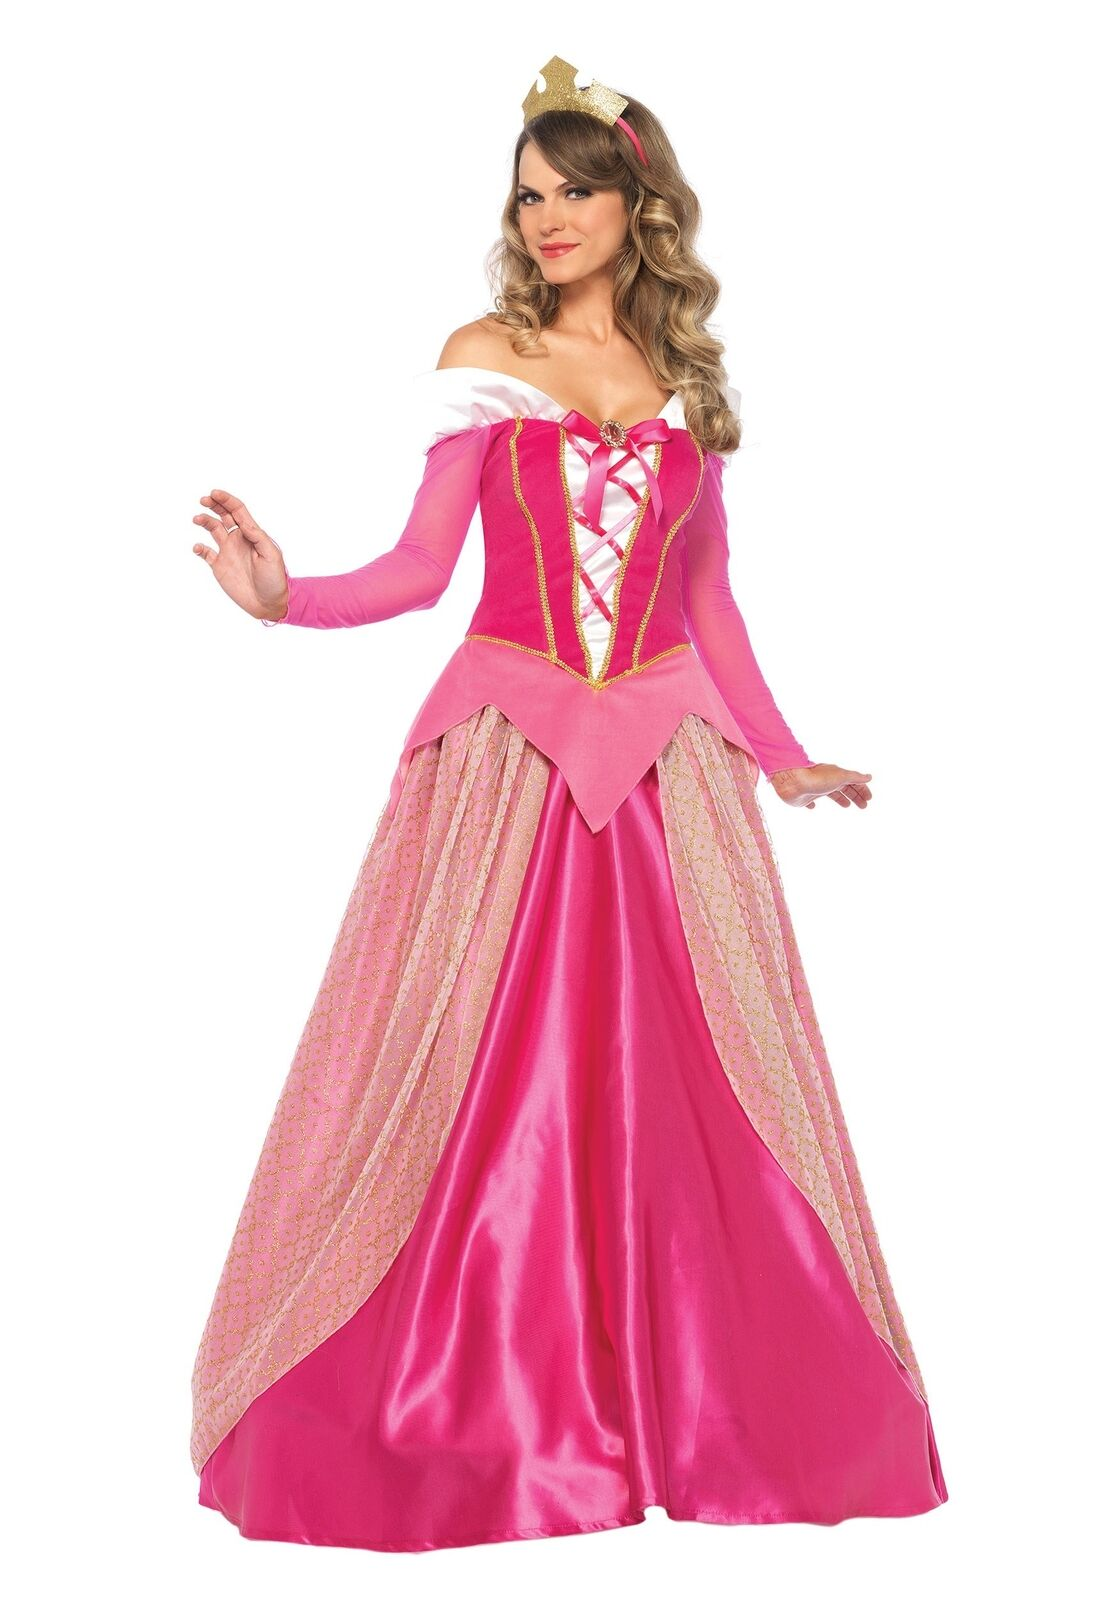 Details about Ladies Sleeping Beauty Costume Women Princess Aurora Cosplay  Gown Fancy Dress ff9bf1ea5